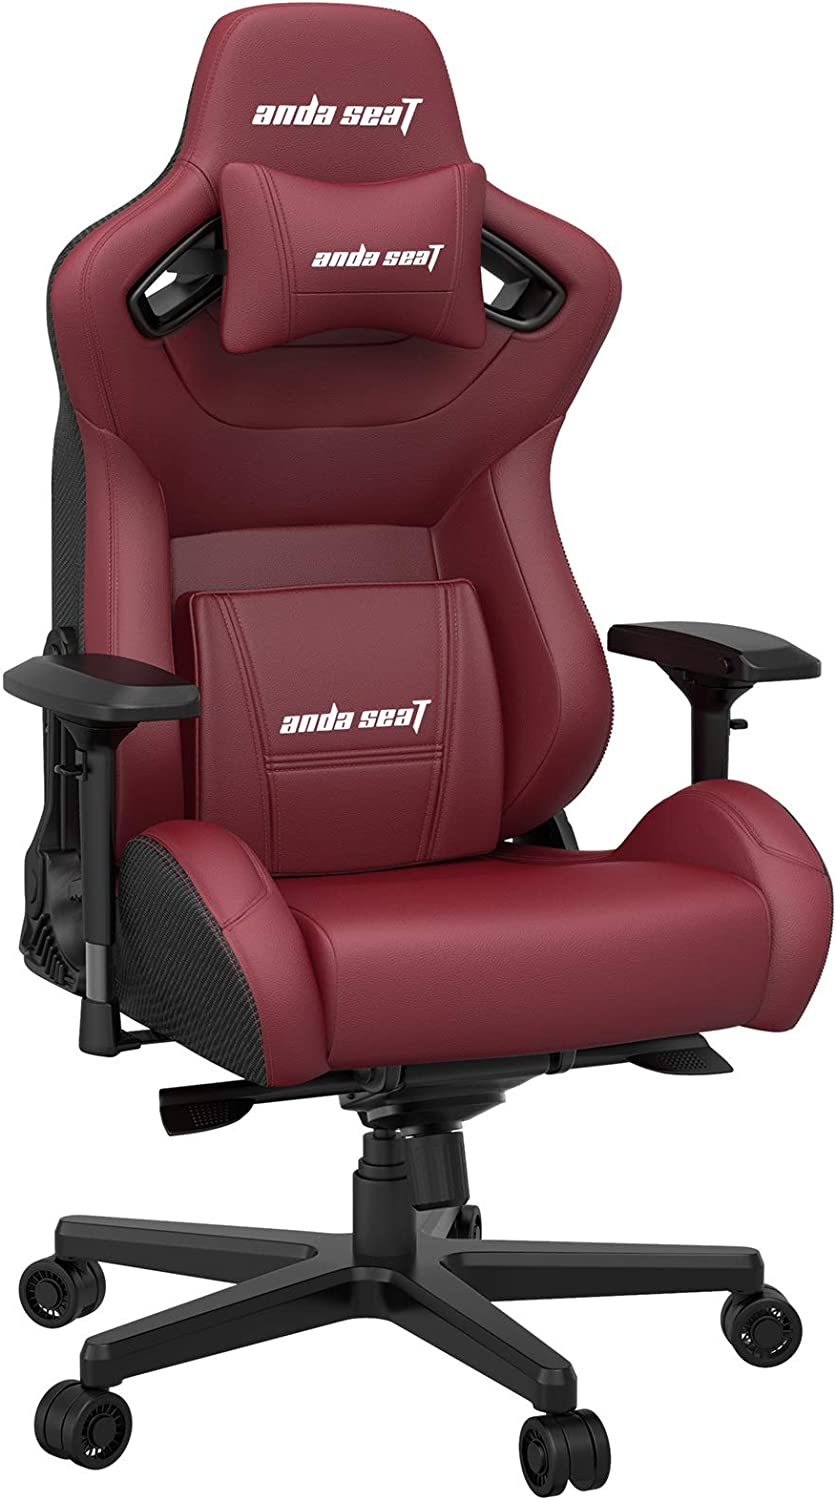 Gaming Chair, ANDASEAT Kaiser 2 Racing Office Computer Chair,Adjustable Swivel Rocker Recliner Leather Game Chair with Headrest and Lumbar Pillow E-Sports Chair (RED1)